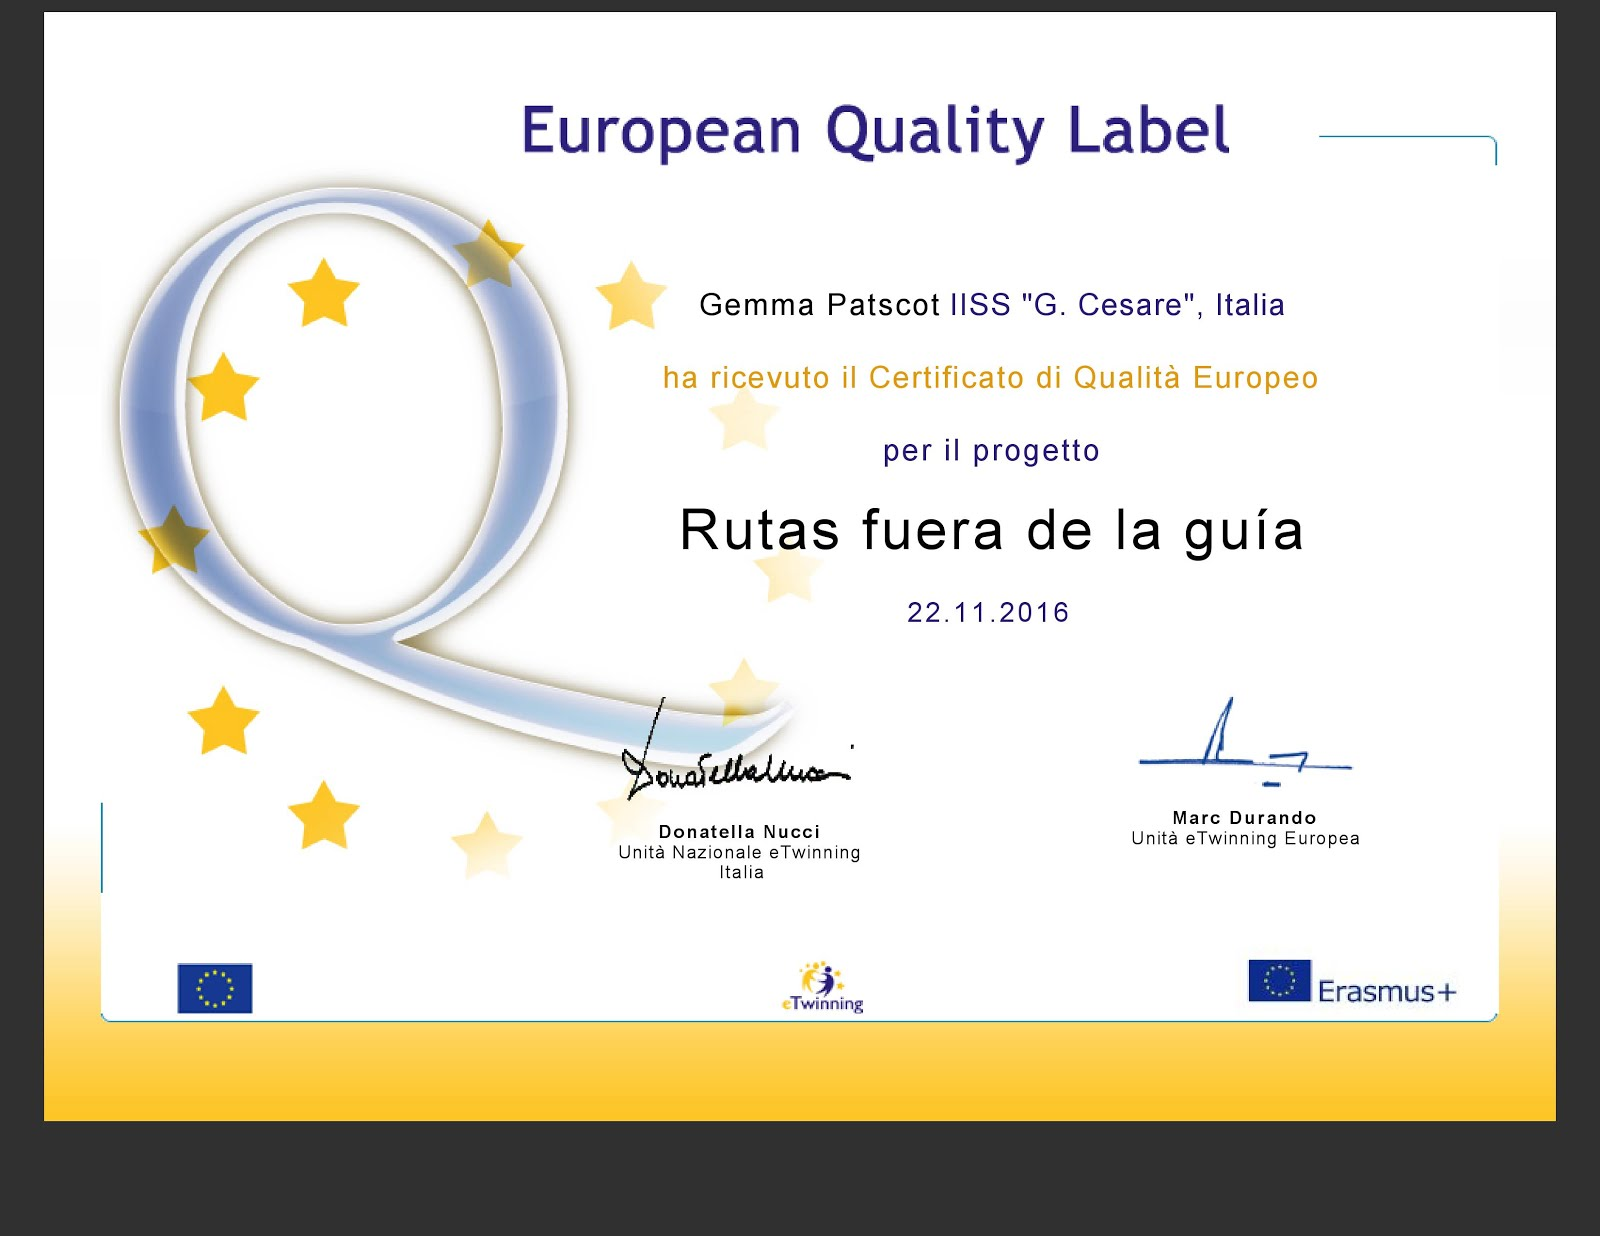 ETWINNING - European Quality Label